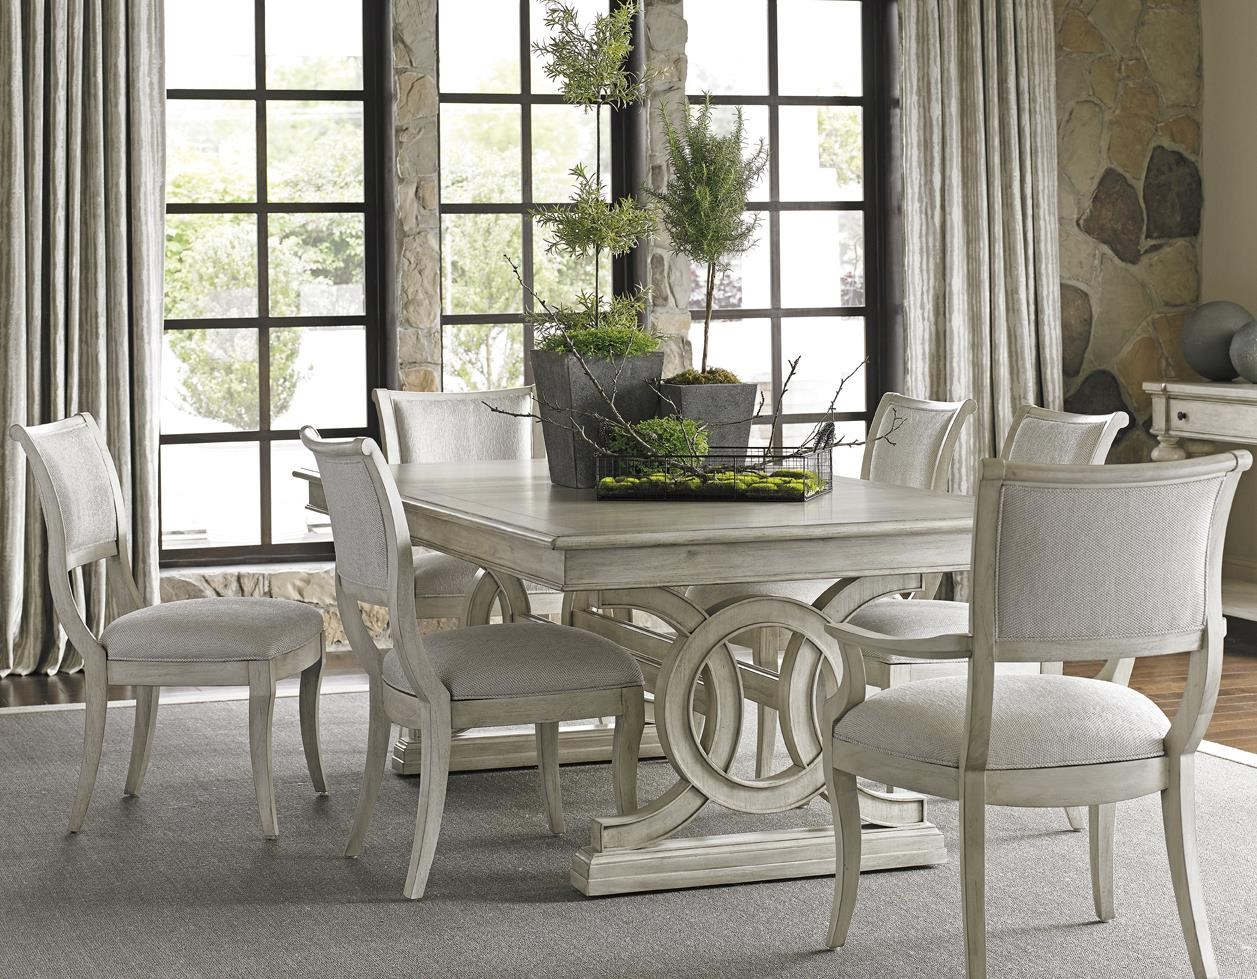 Beau Lexington Oyster Bay Seven Piece Dining Set With Montauk Table And Eastport  Chairs